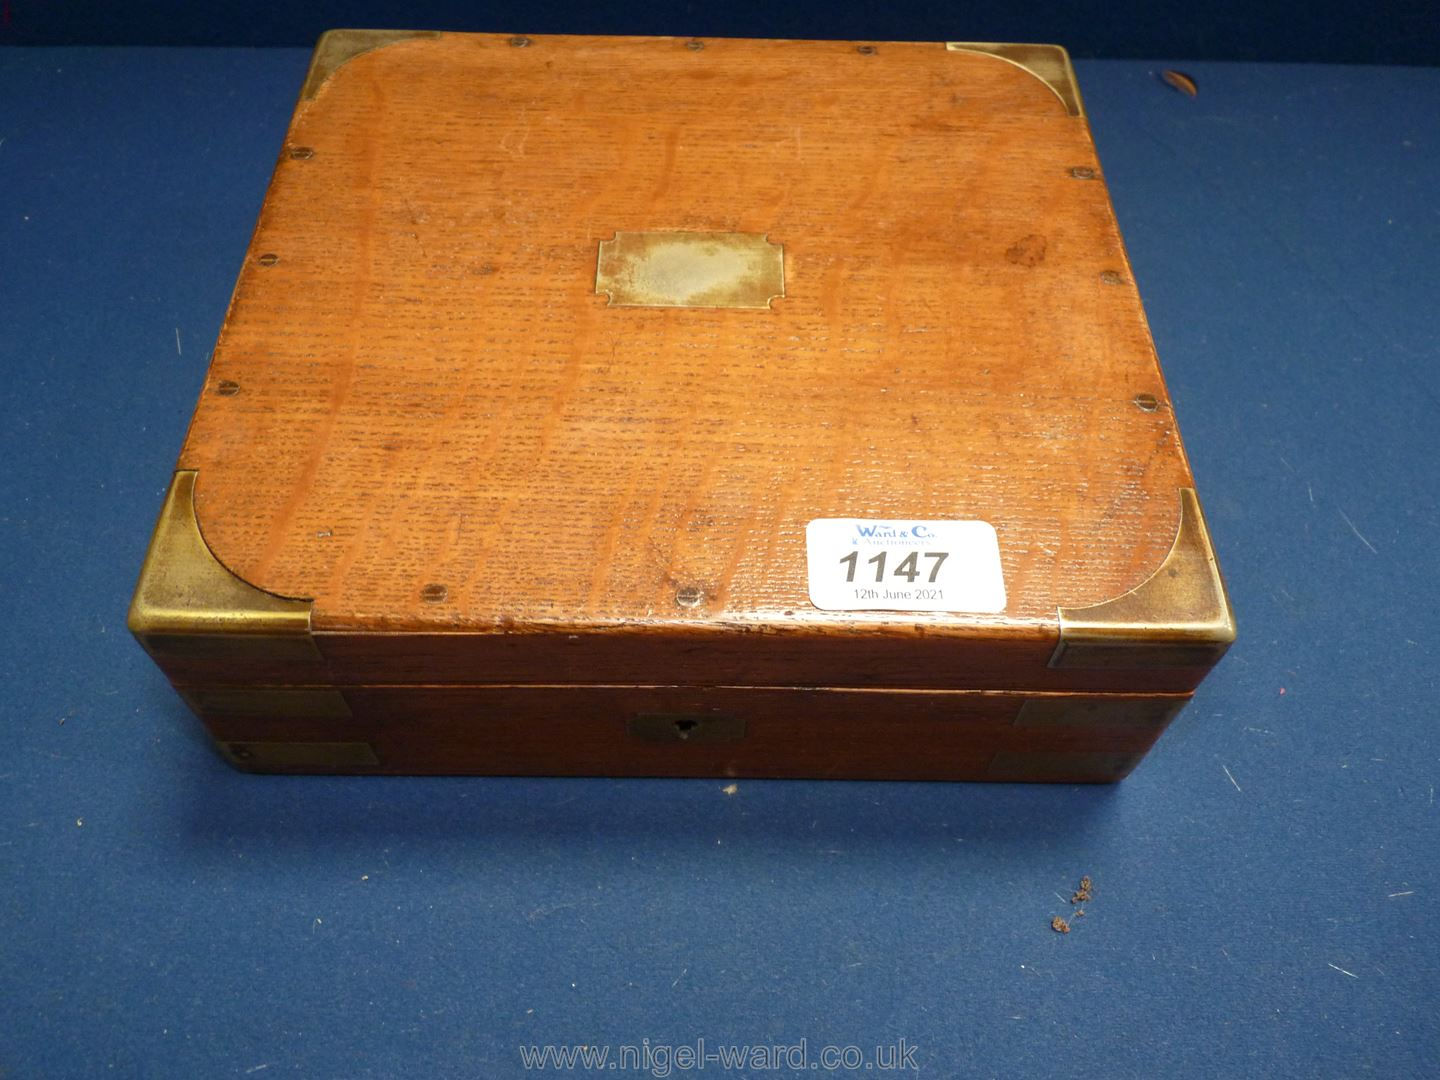 A brass cornered cased set of Drawing instruments with bone handles and lower tier with rulers, etc. - Image 2 of 2